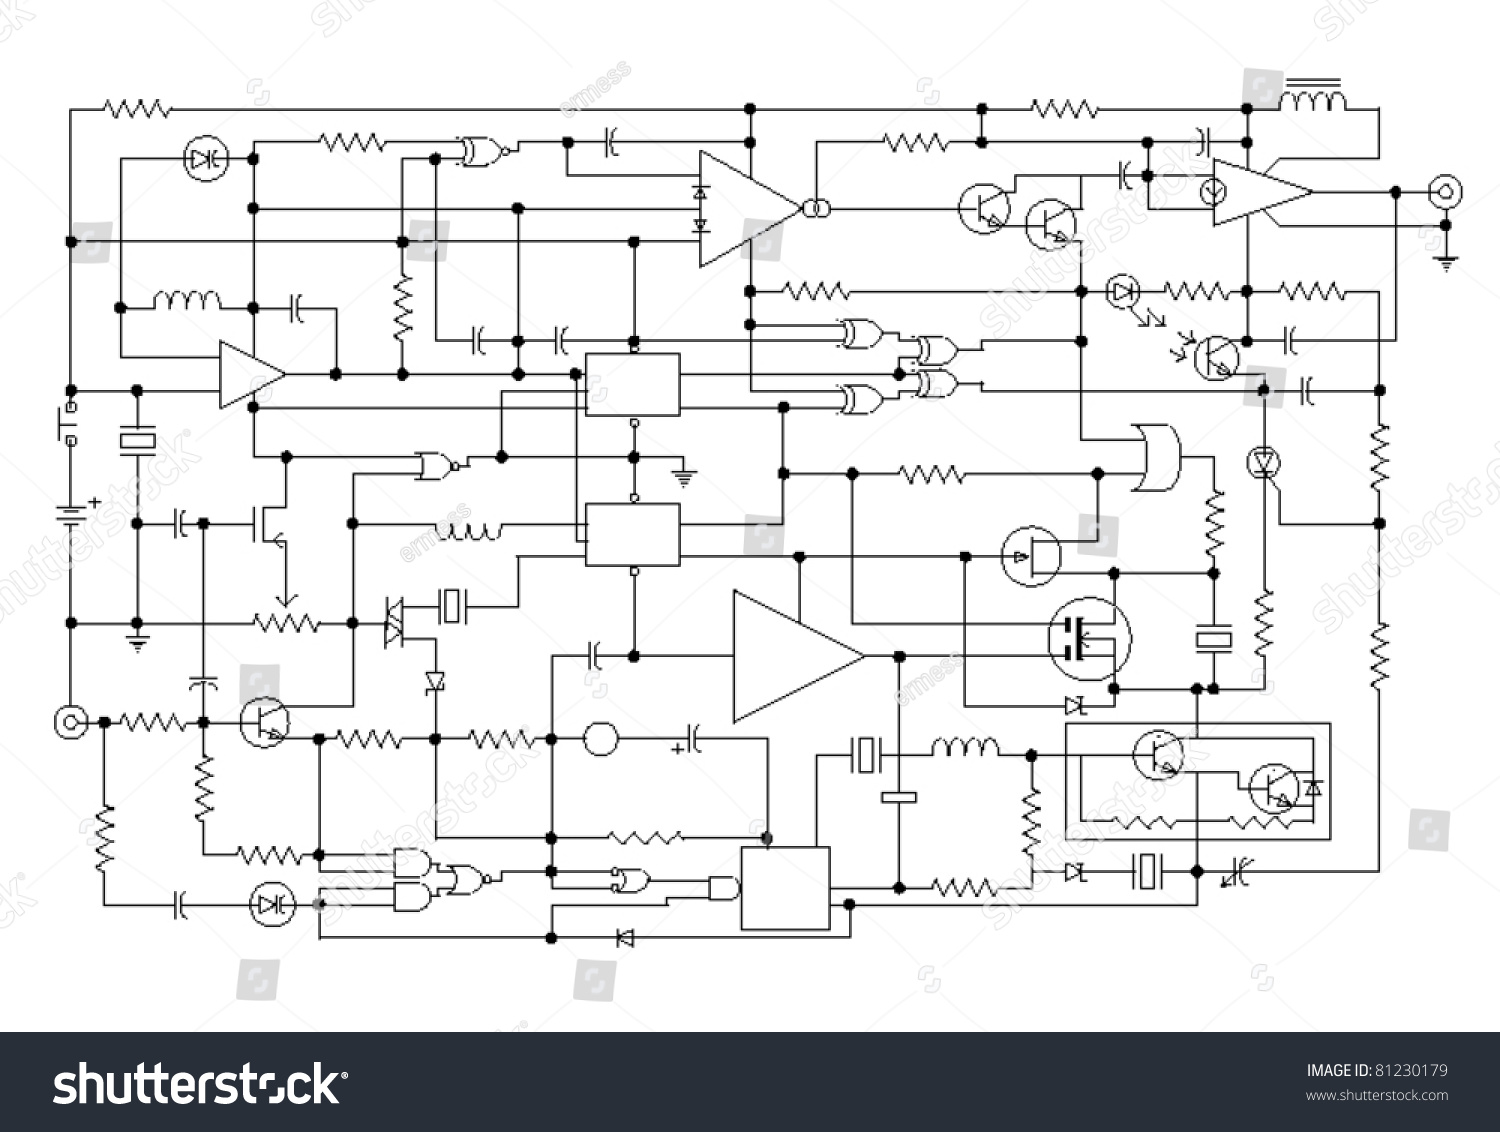 Schematic Diagram Project Electronic Circuit Graphic Stock Photo ...